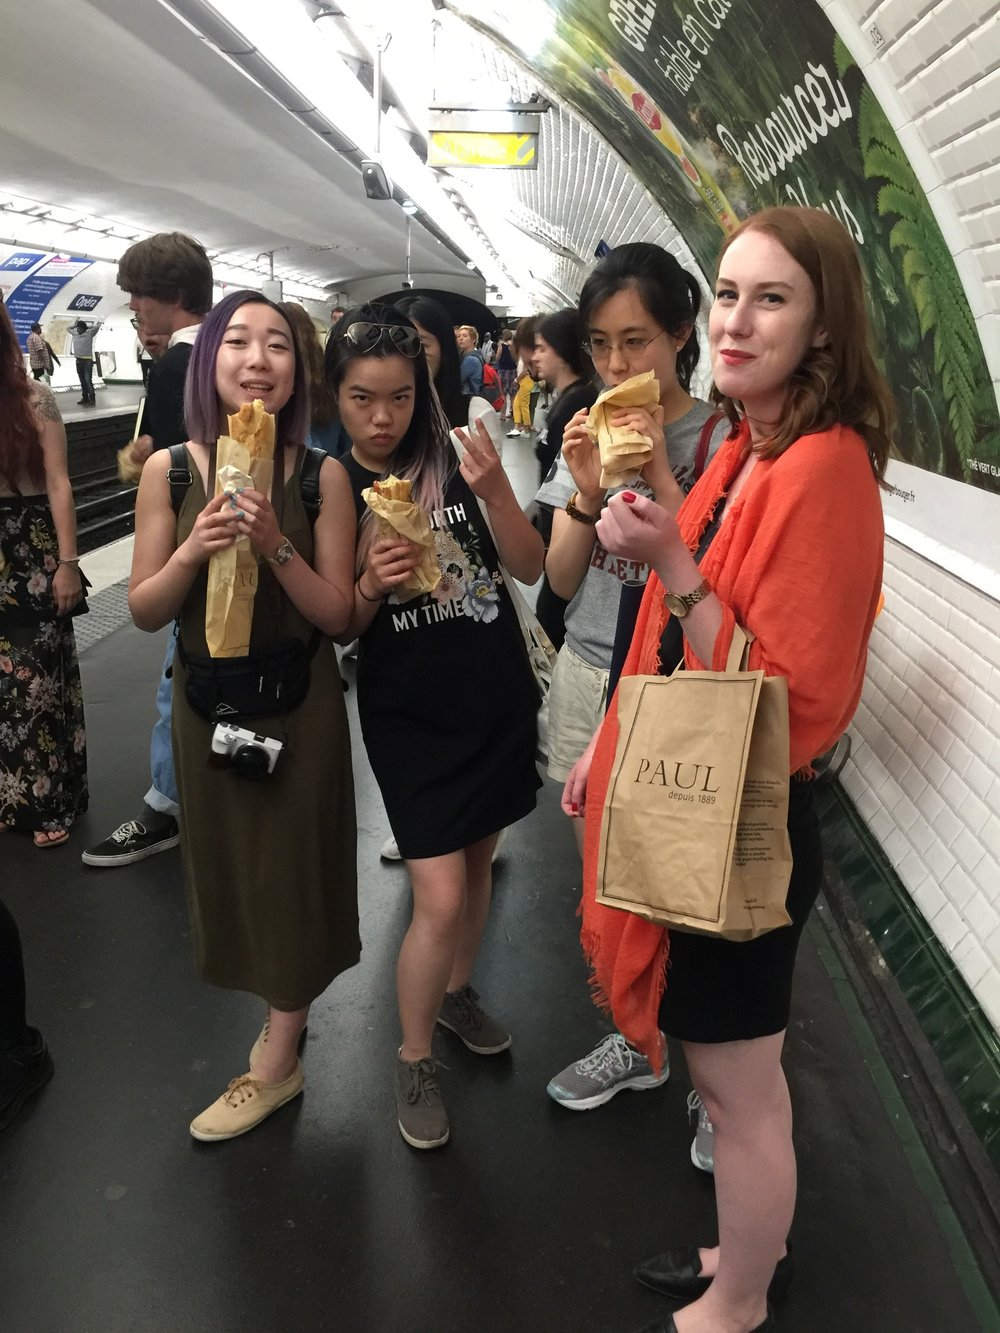 Jenny, Zoe, Alice, and Ashley enjoying on-the-go sandwiches while waiting on the Metro.